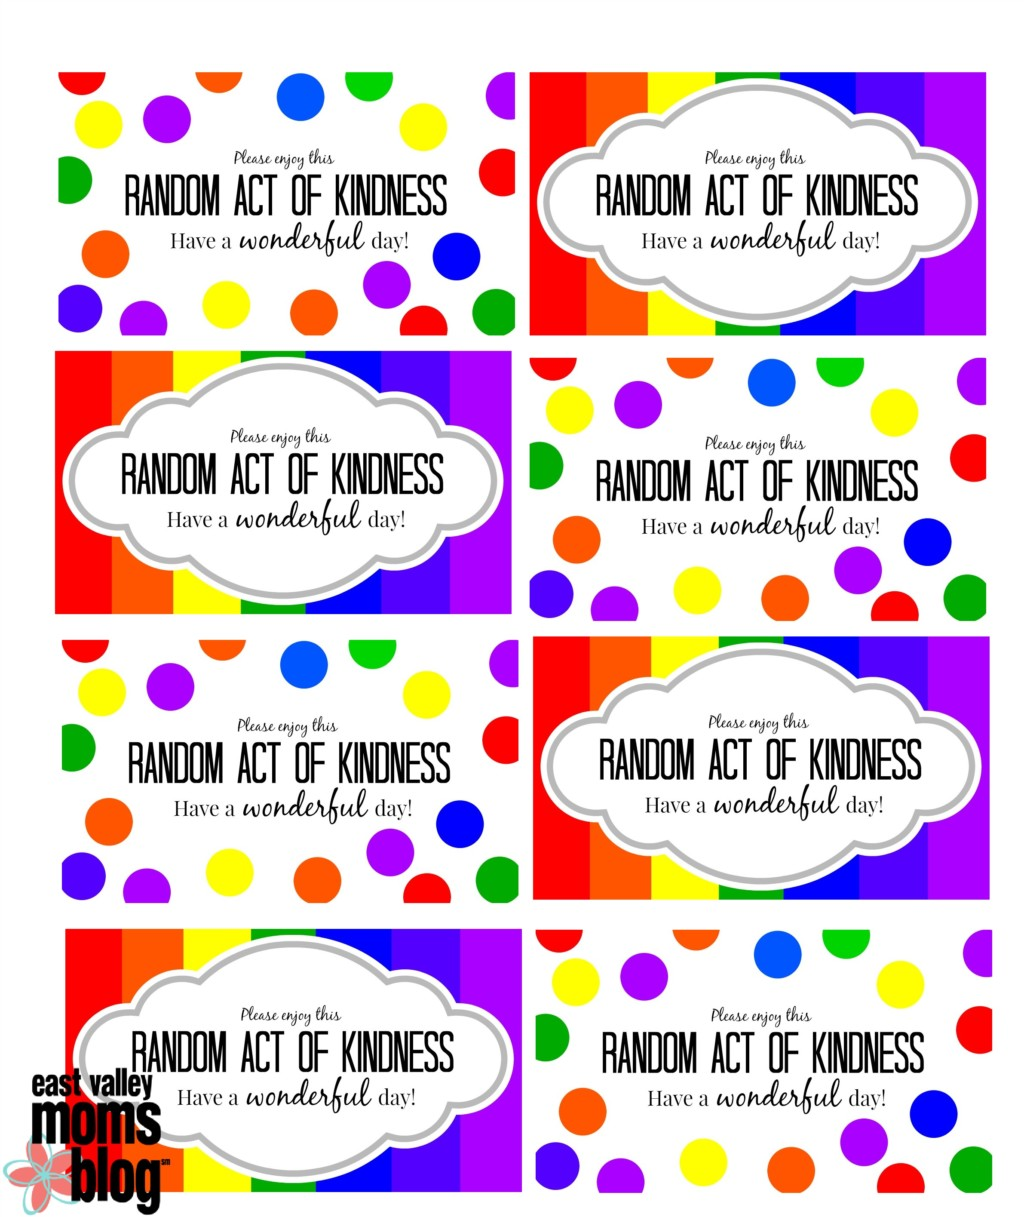 image regarding Random Acts of Kindness Cards Printable called Random Functions of Kindness Kindness Commences With Me